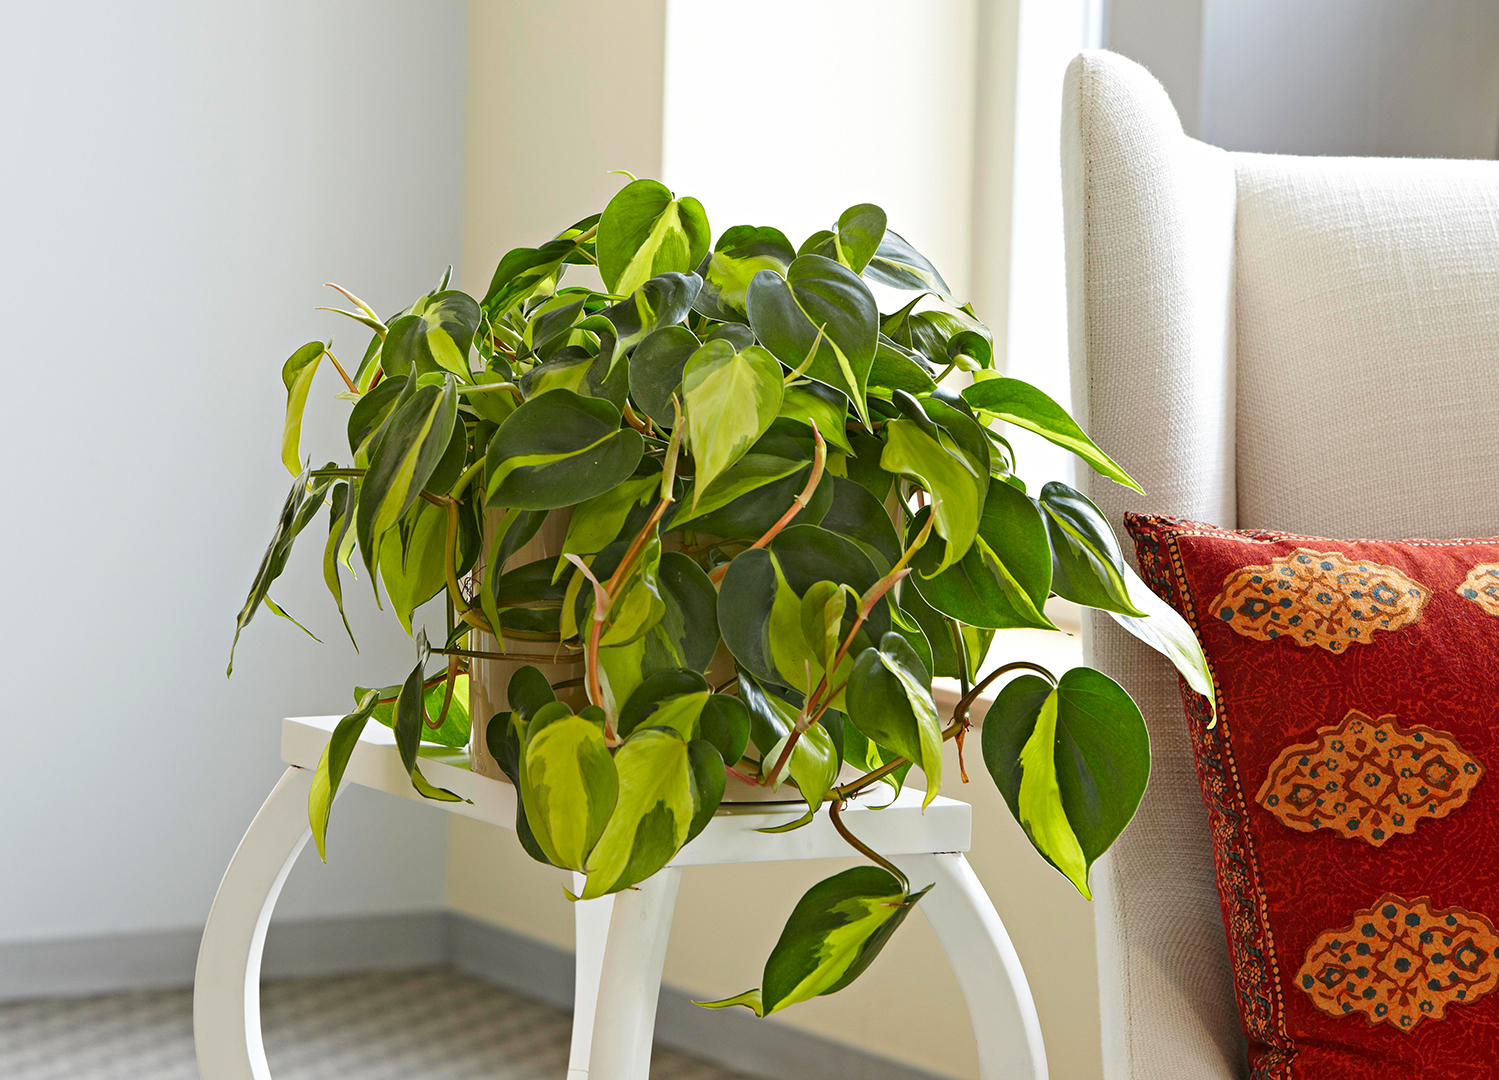 Heartleaf Philodendron on white table in living room